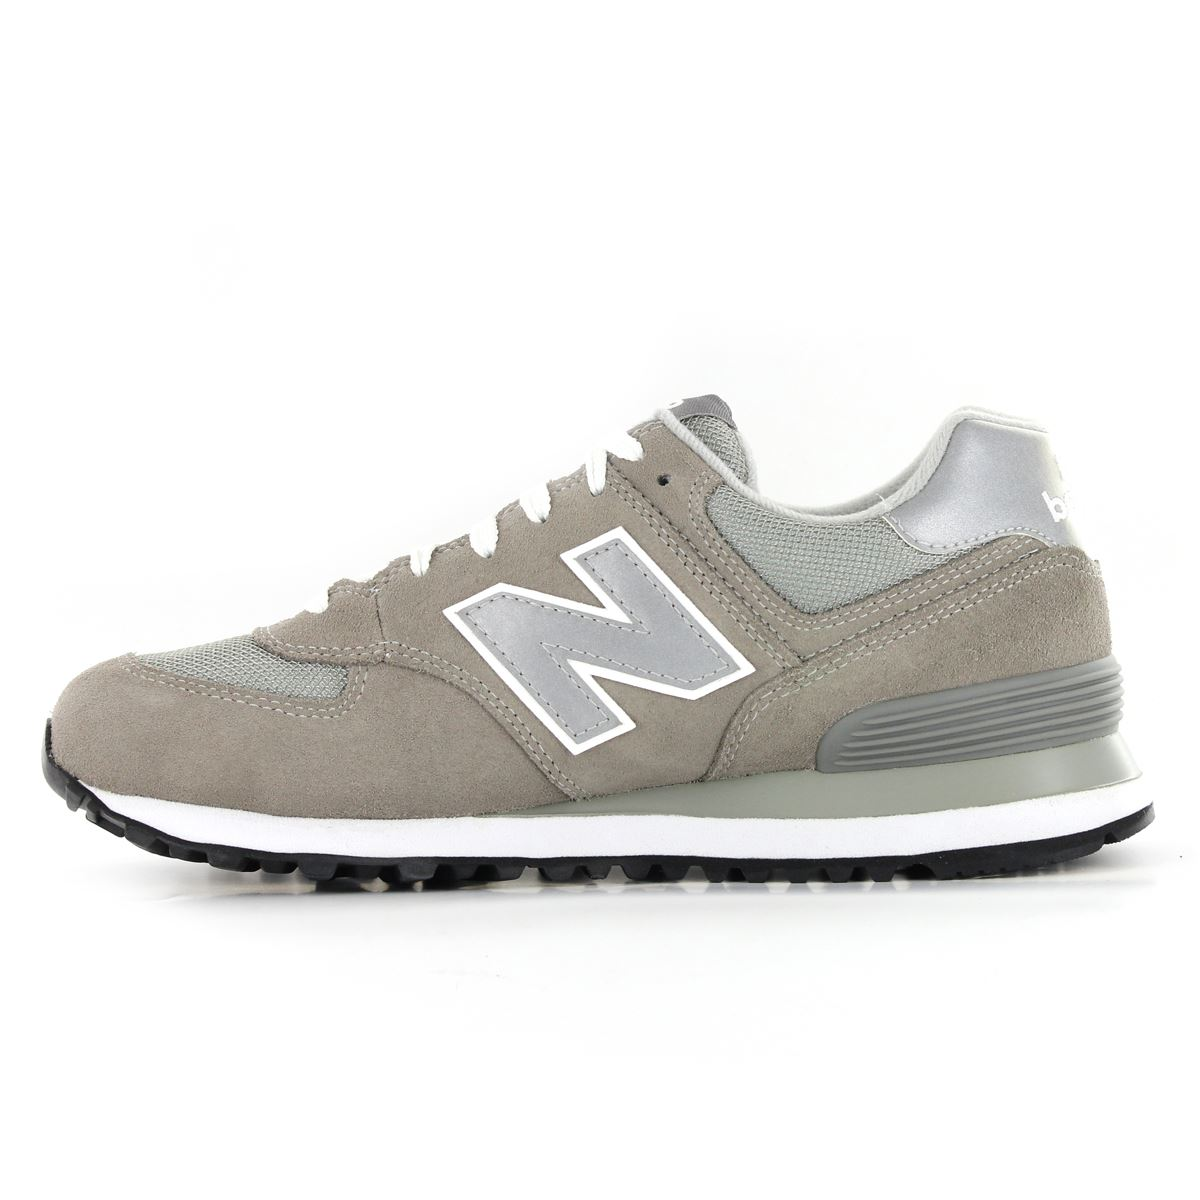 new balance classic traditionnels m574 leather mens trainers. Black Bedroom Furniture Sets. Home Design Ideas